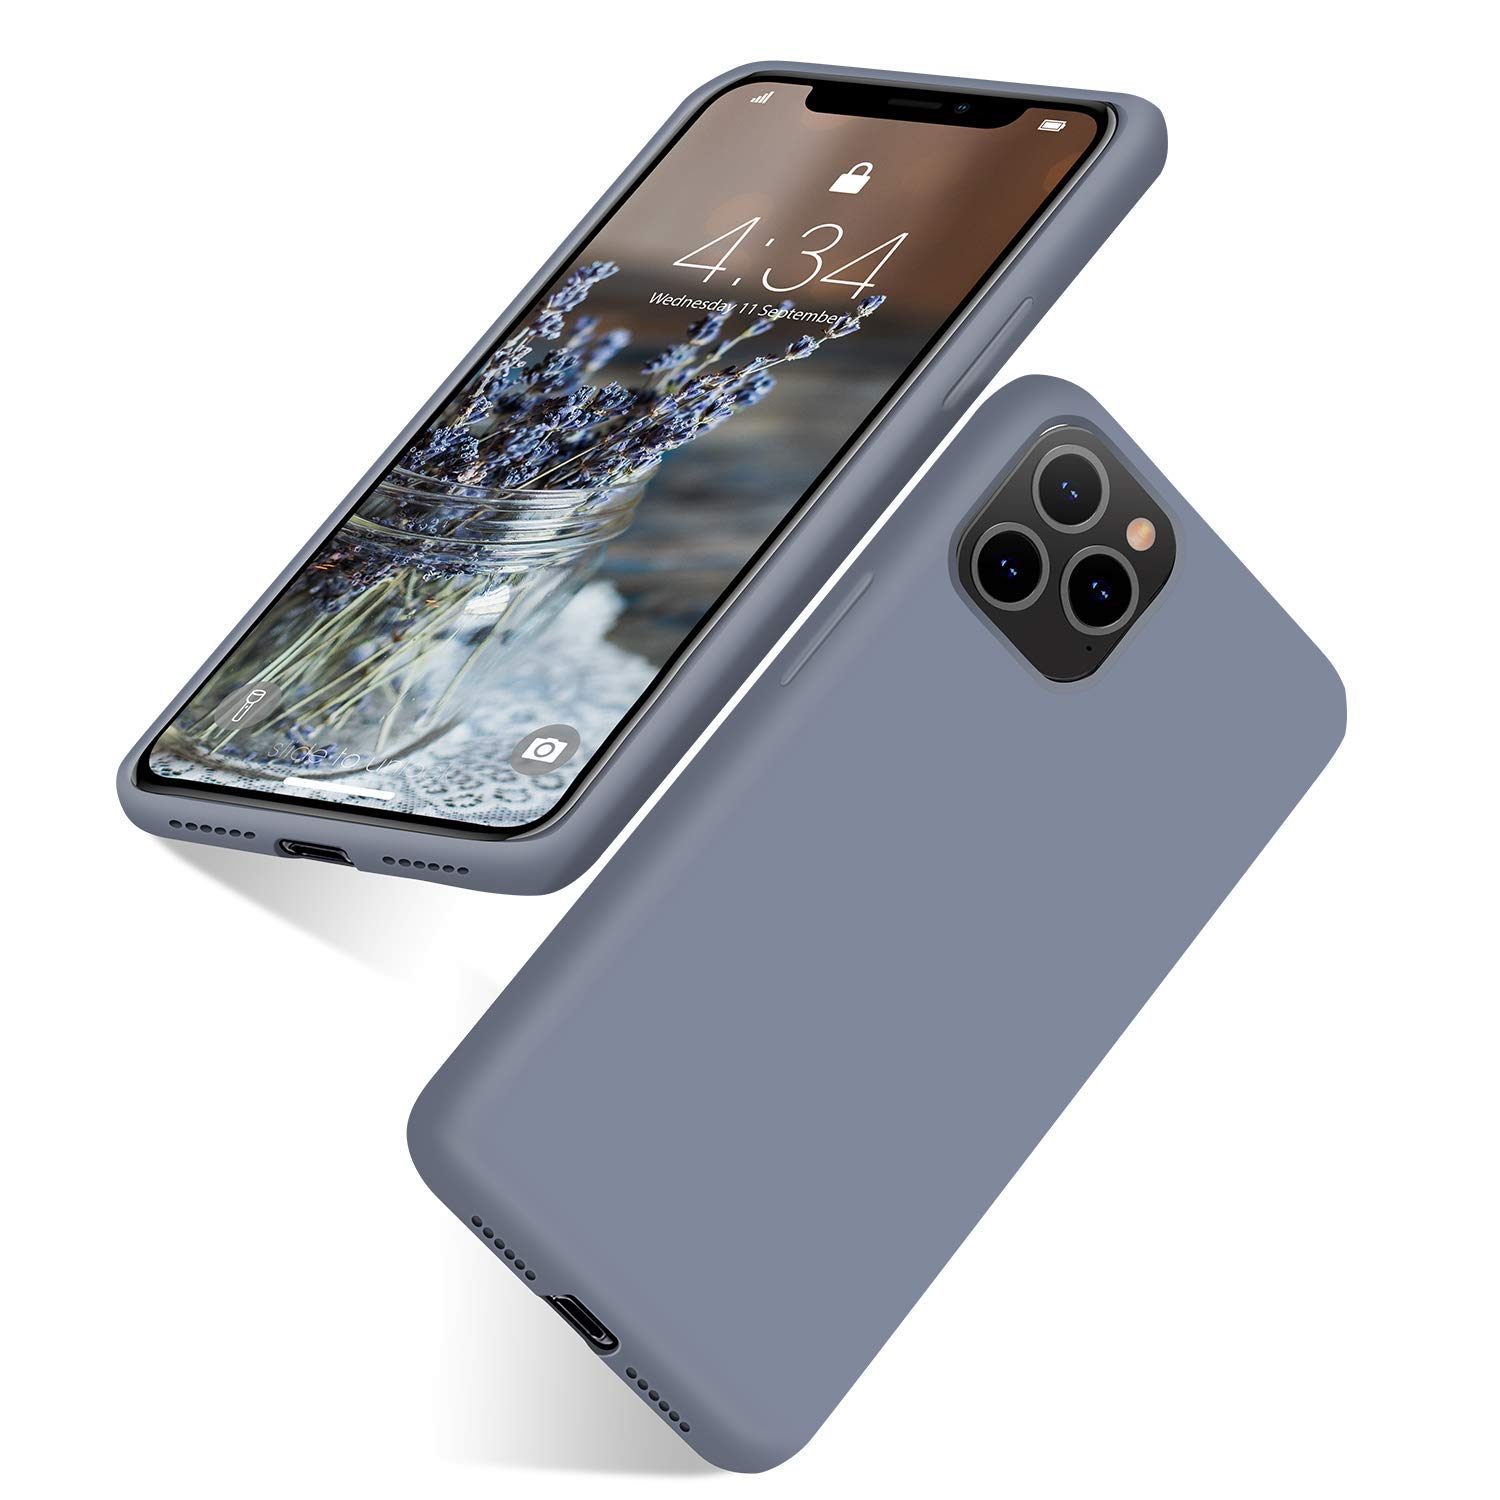 abitku iPhone 11 Pro Case Silicone, Gel Rubber (Full Body Case with Microfiber Lining) Drop Protective Shockproof Case for iPhone 11 Pro 5.8 inch-Lavender Gray